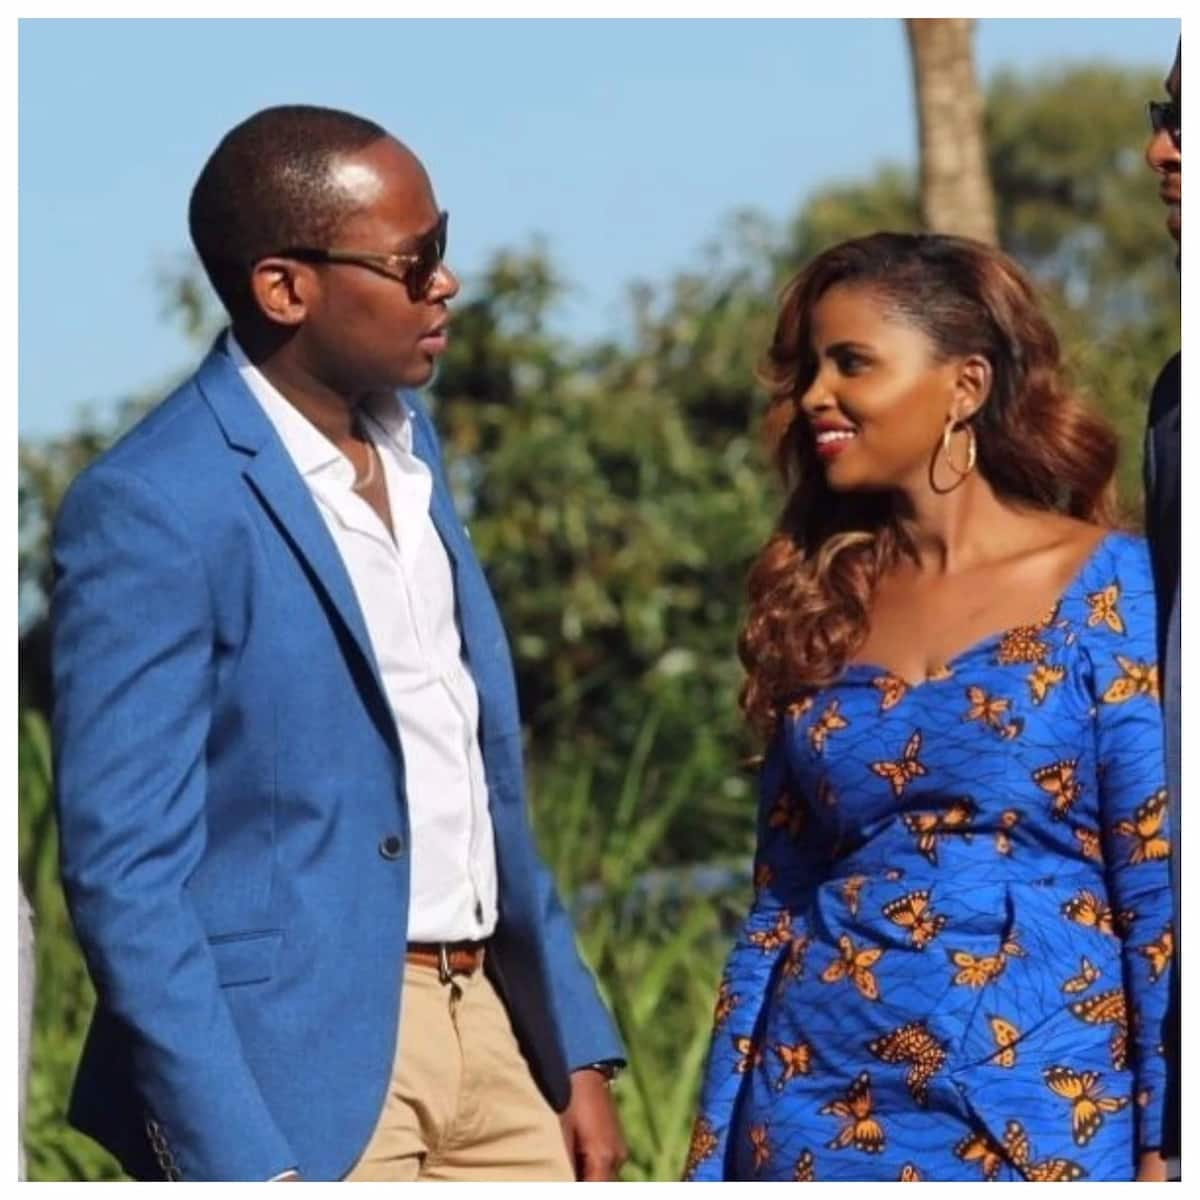 Anerlisa Muigai explains why she has decided to show her man's face